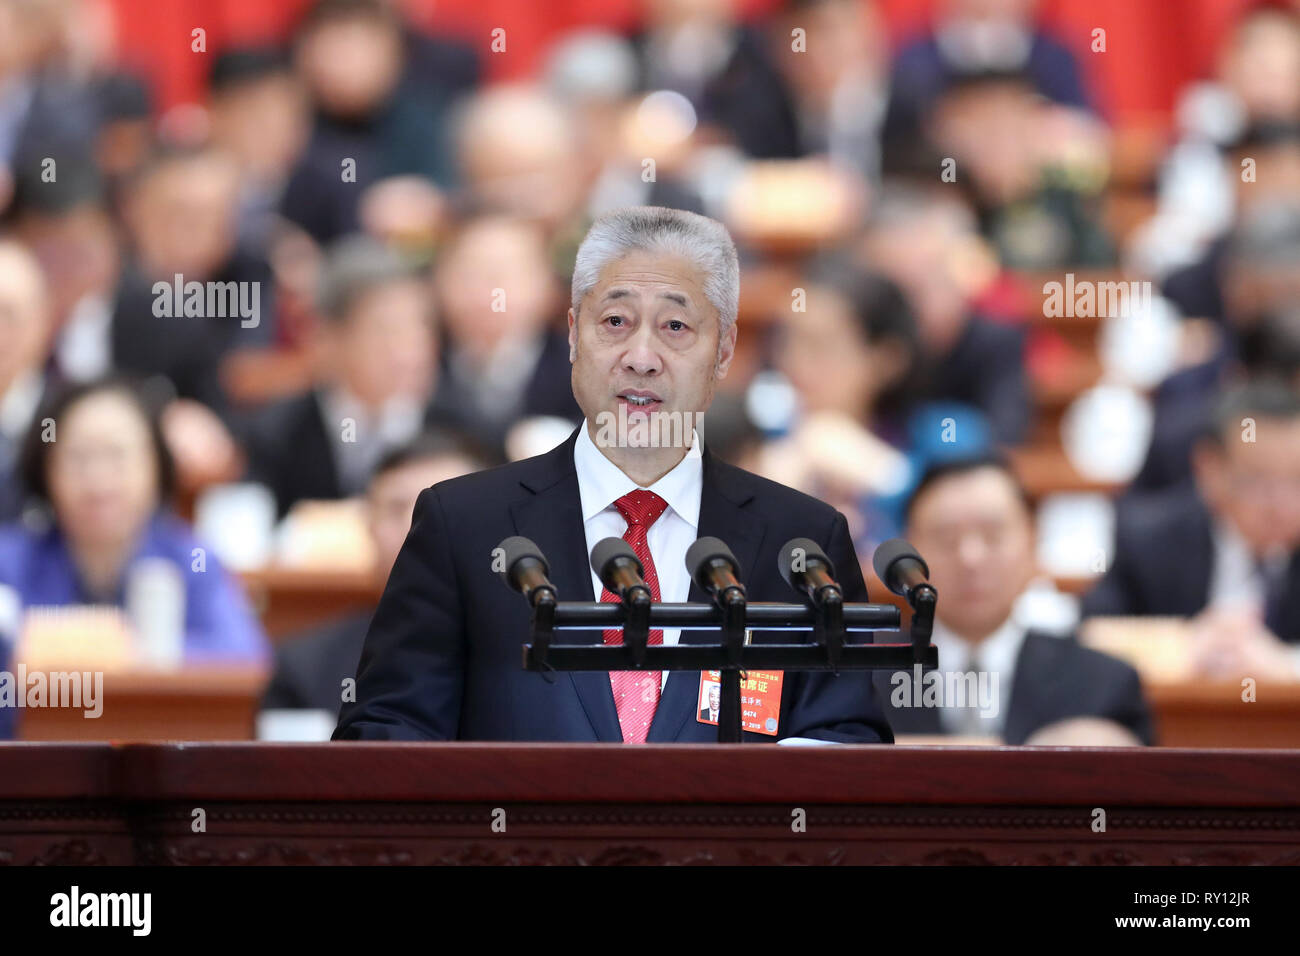 Beijing, China. 11th Mar, 2019. On behalf of the Central Committee of the Taiwan Democratic Self-Government League, Zhang Zexi, a member of the 13th National Committee of the Chinese People's Political Consultative Conference (CPPCC), delivers a speech at the fourth plenary meeting of the second session of the 13th CPPCC National Committee at the Great Hall of the People in Beijing, capital of China, March 11, 2019. Credit: Rao Aimin/Xinhua/Alamy Live News - Stock Image